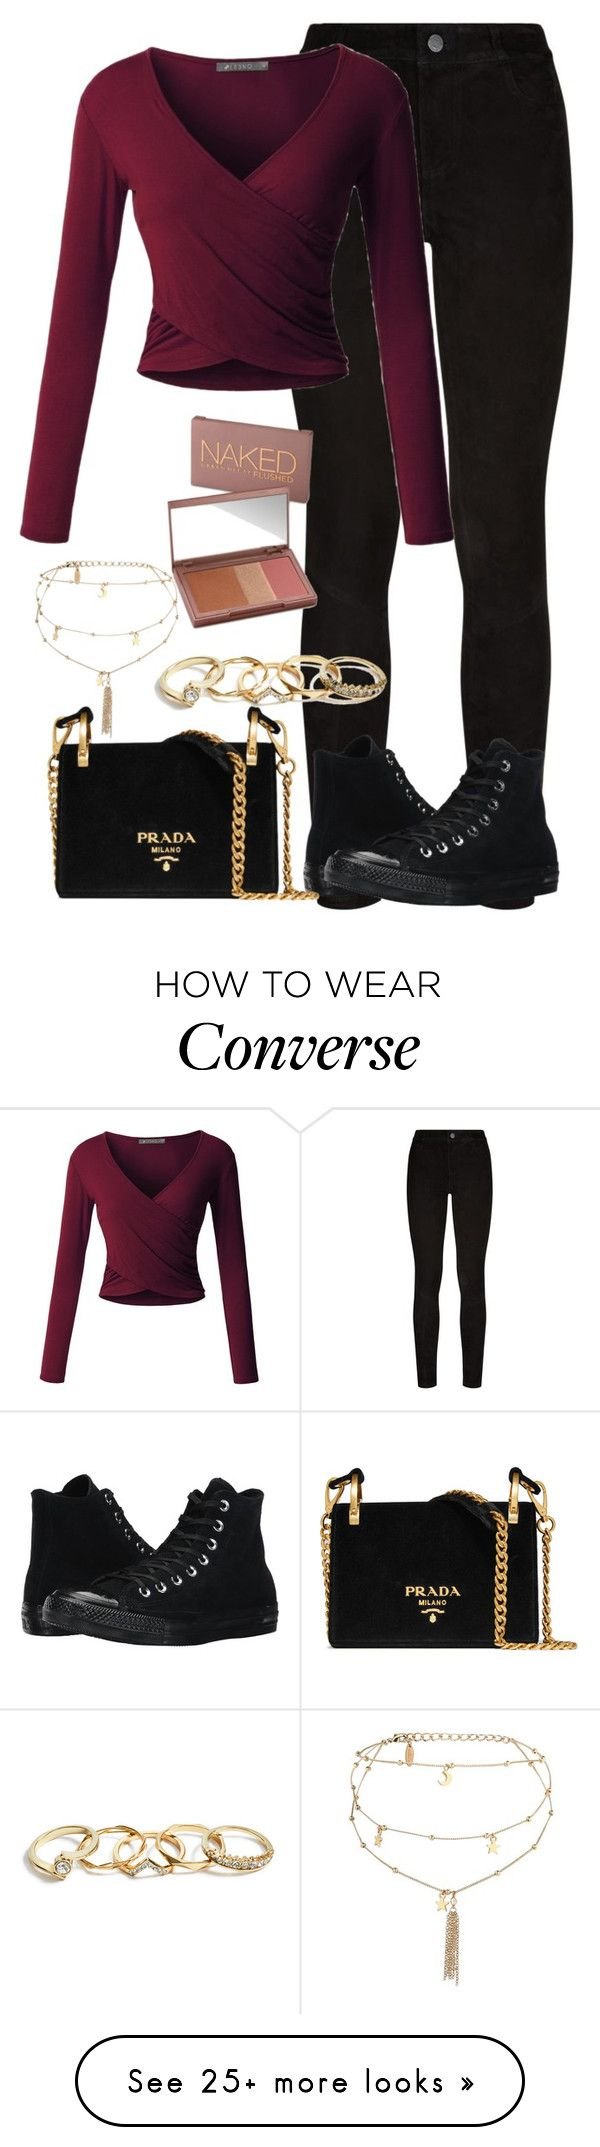 """Untitled #713"" by ayalikeschicken on Polyvore featuring Paige Denim, LE3NO, Converse, Prada, Ettika, GUESS and Urban Decay"